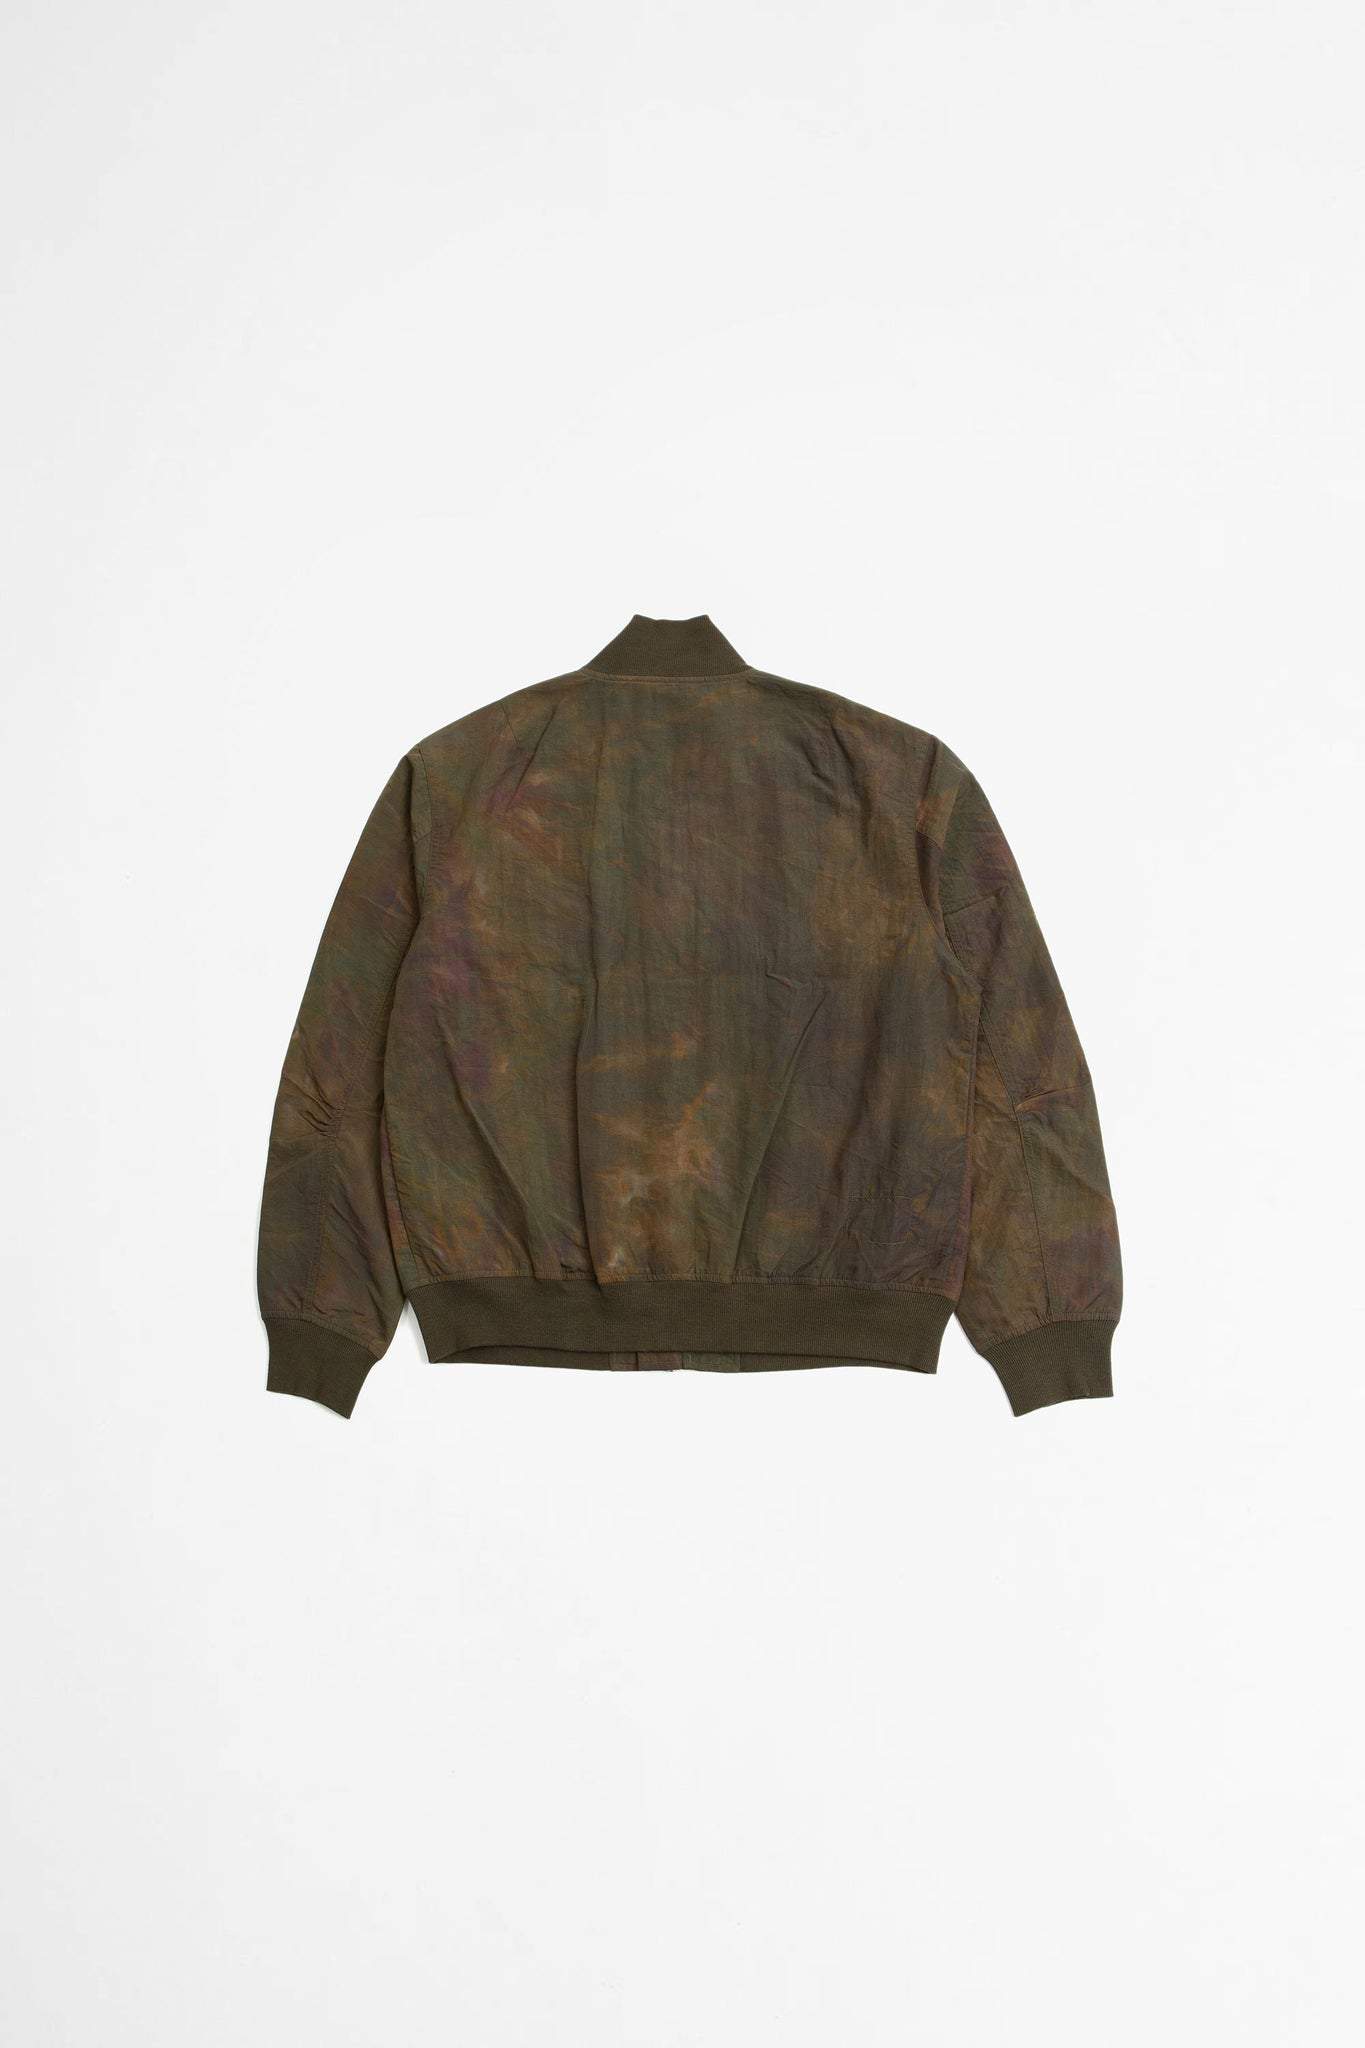 Bomber jacket space dyed nylon olive